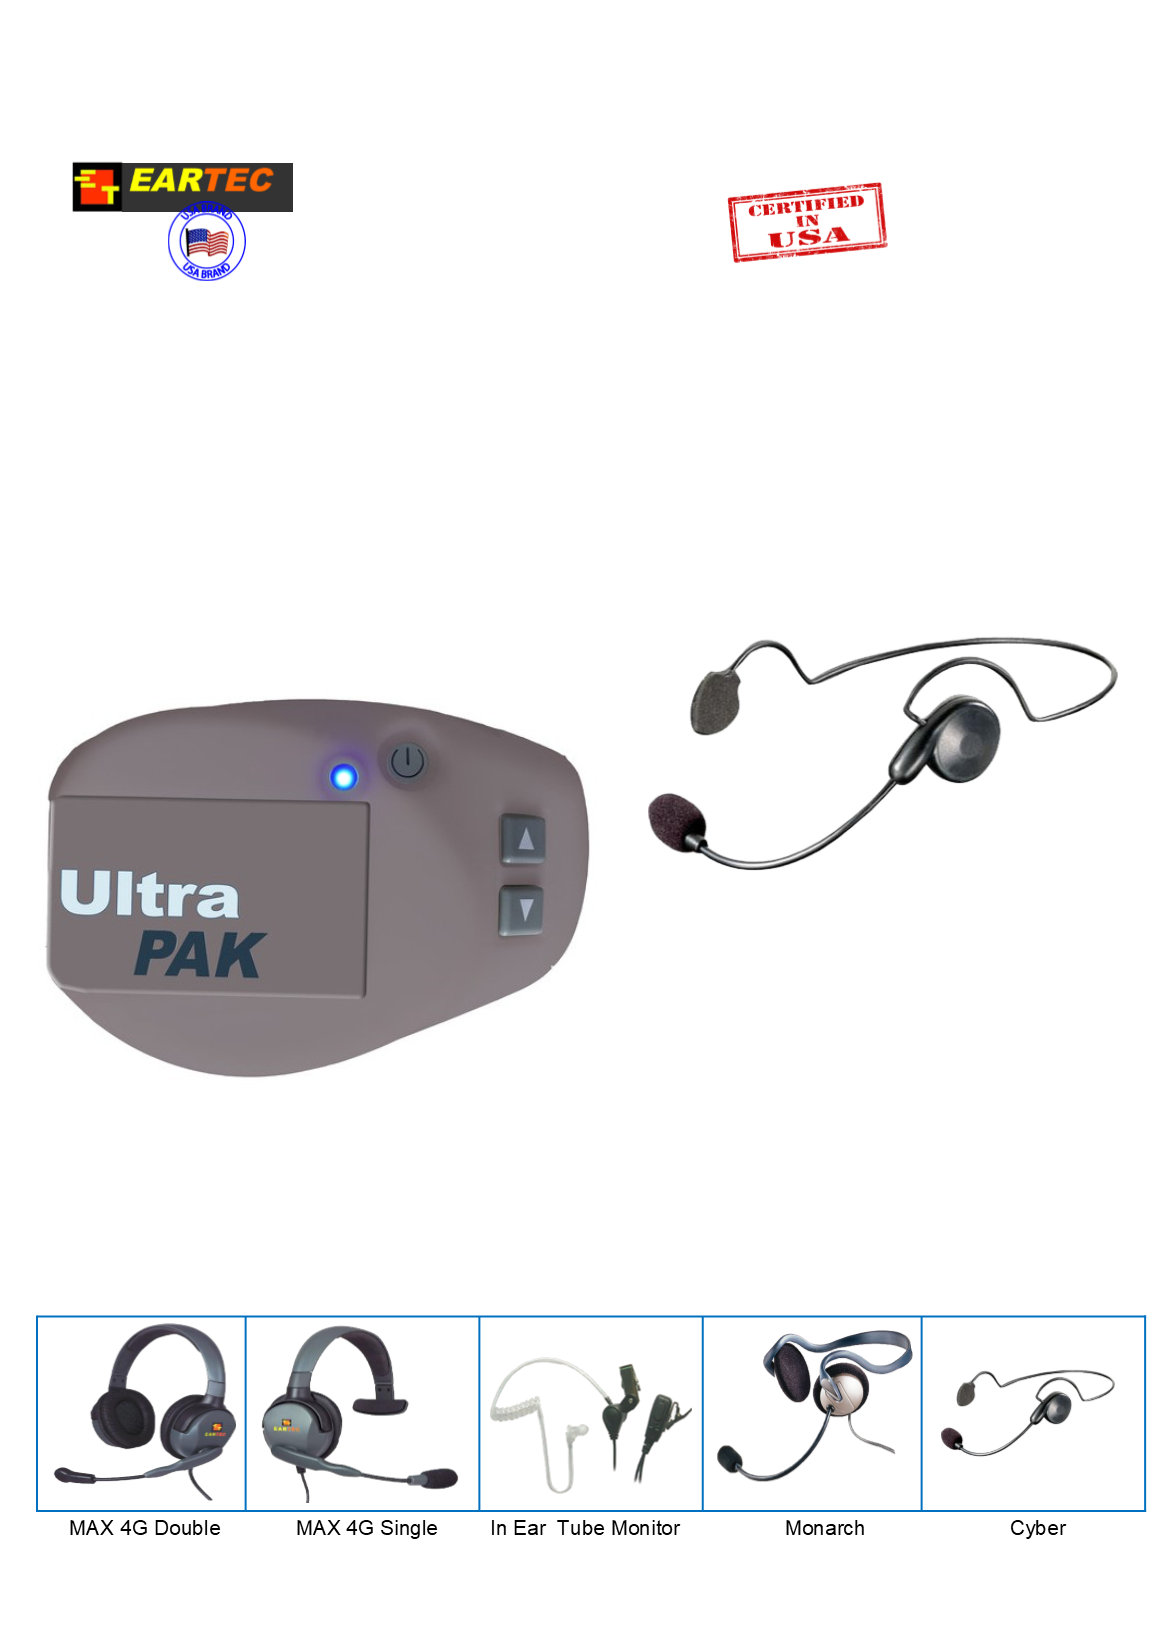 Eartec UPCYB1 UltraPAK Intercom System with Cyber Headset Communications & IFB Eartec